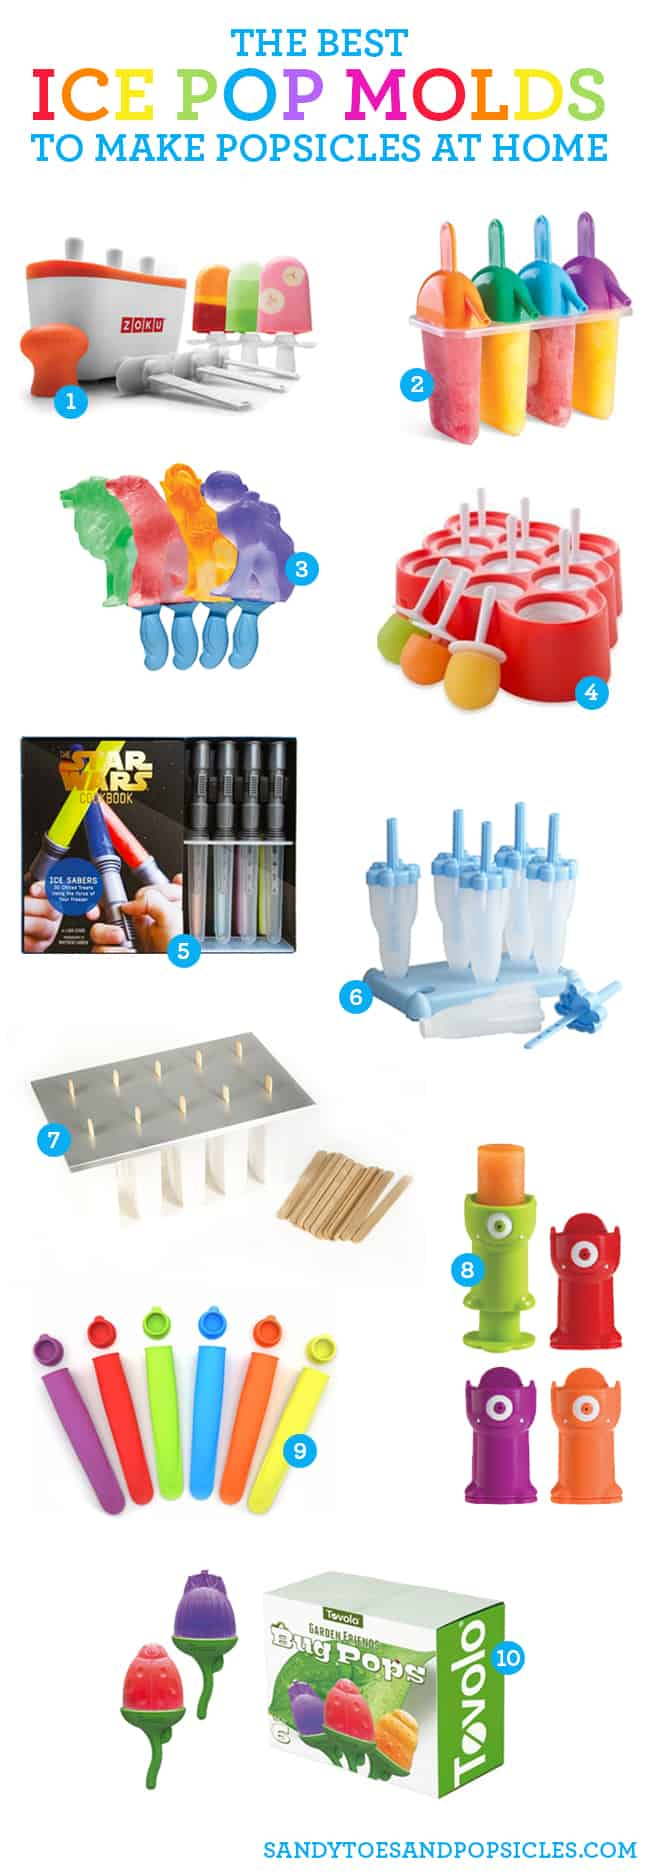 10 Great Ice Pop Molds for Making Homemade Popsicles